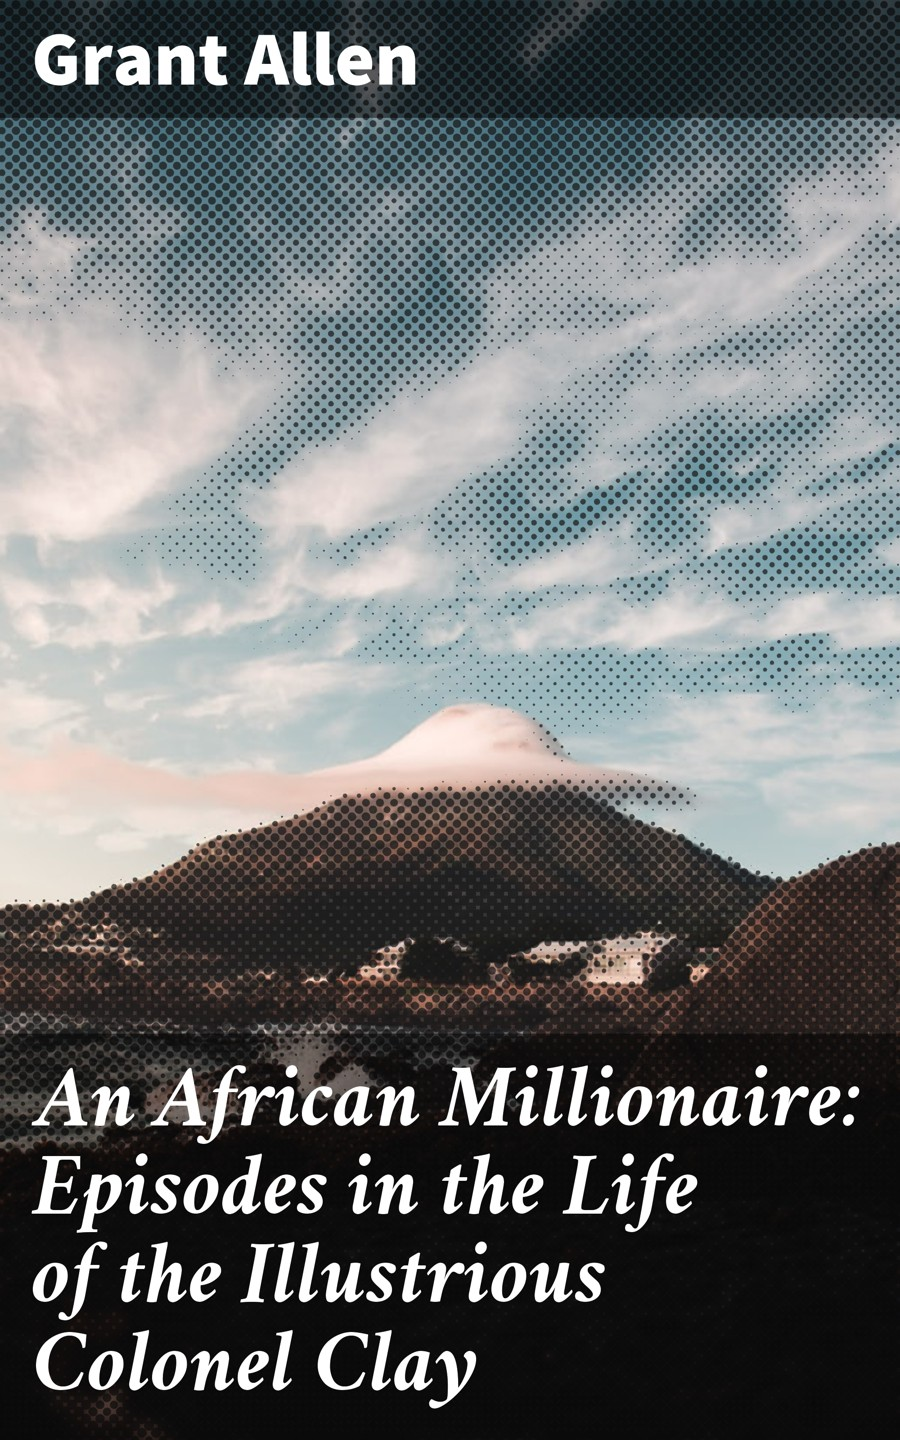 Allen Grant An African Millionaire: Episodes in the Life of the Illustrious Colonel Clay